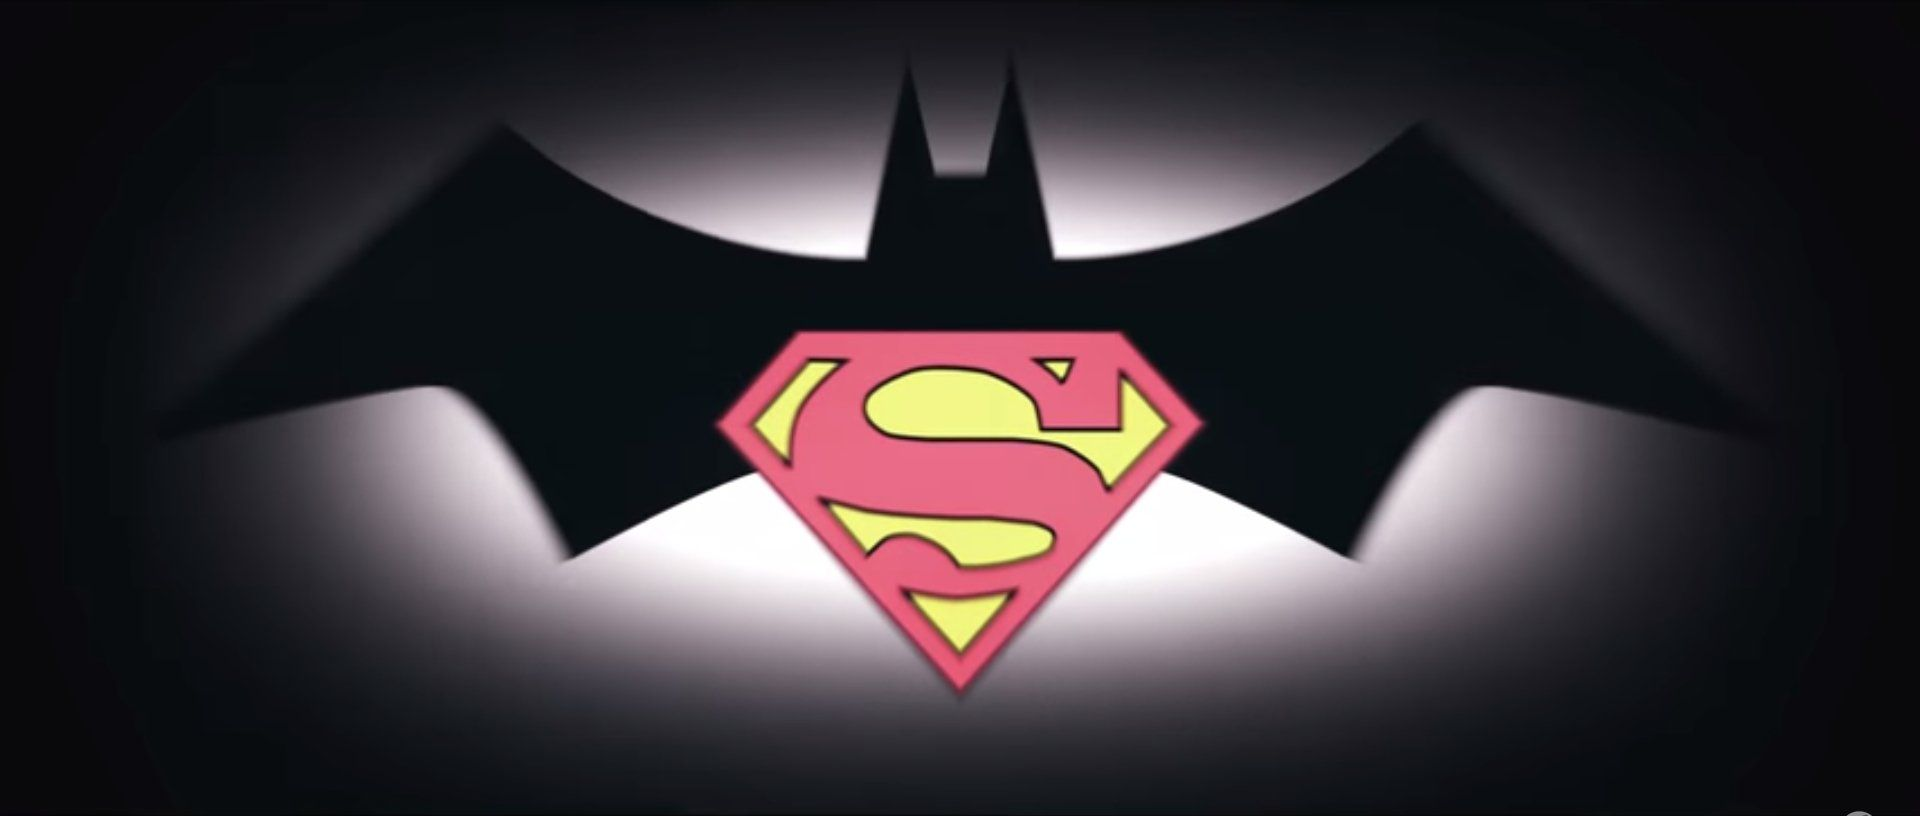 Batman v Superman parodie logo JTS